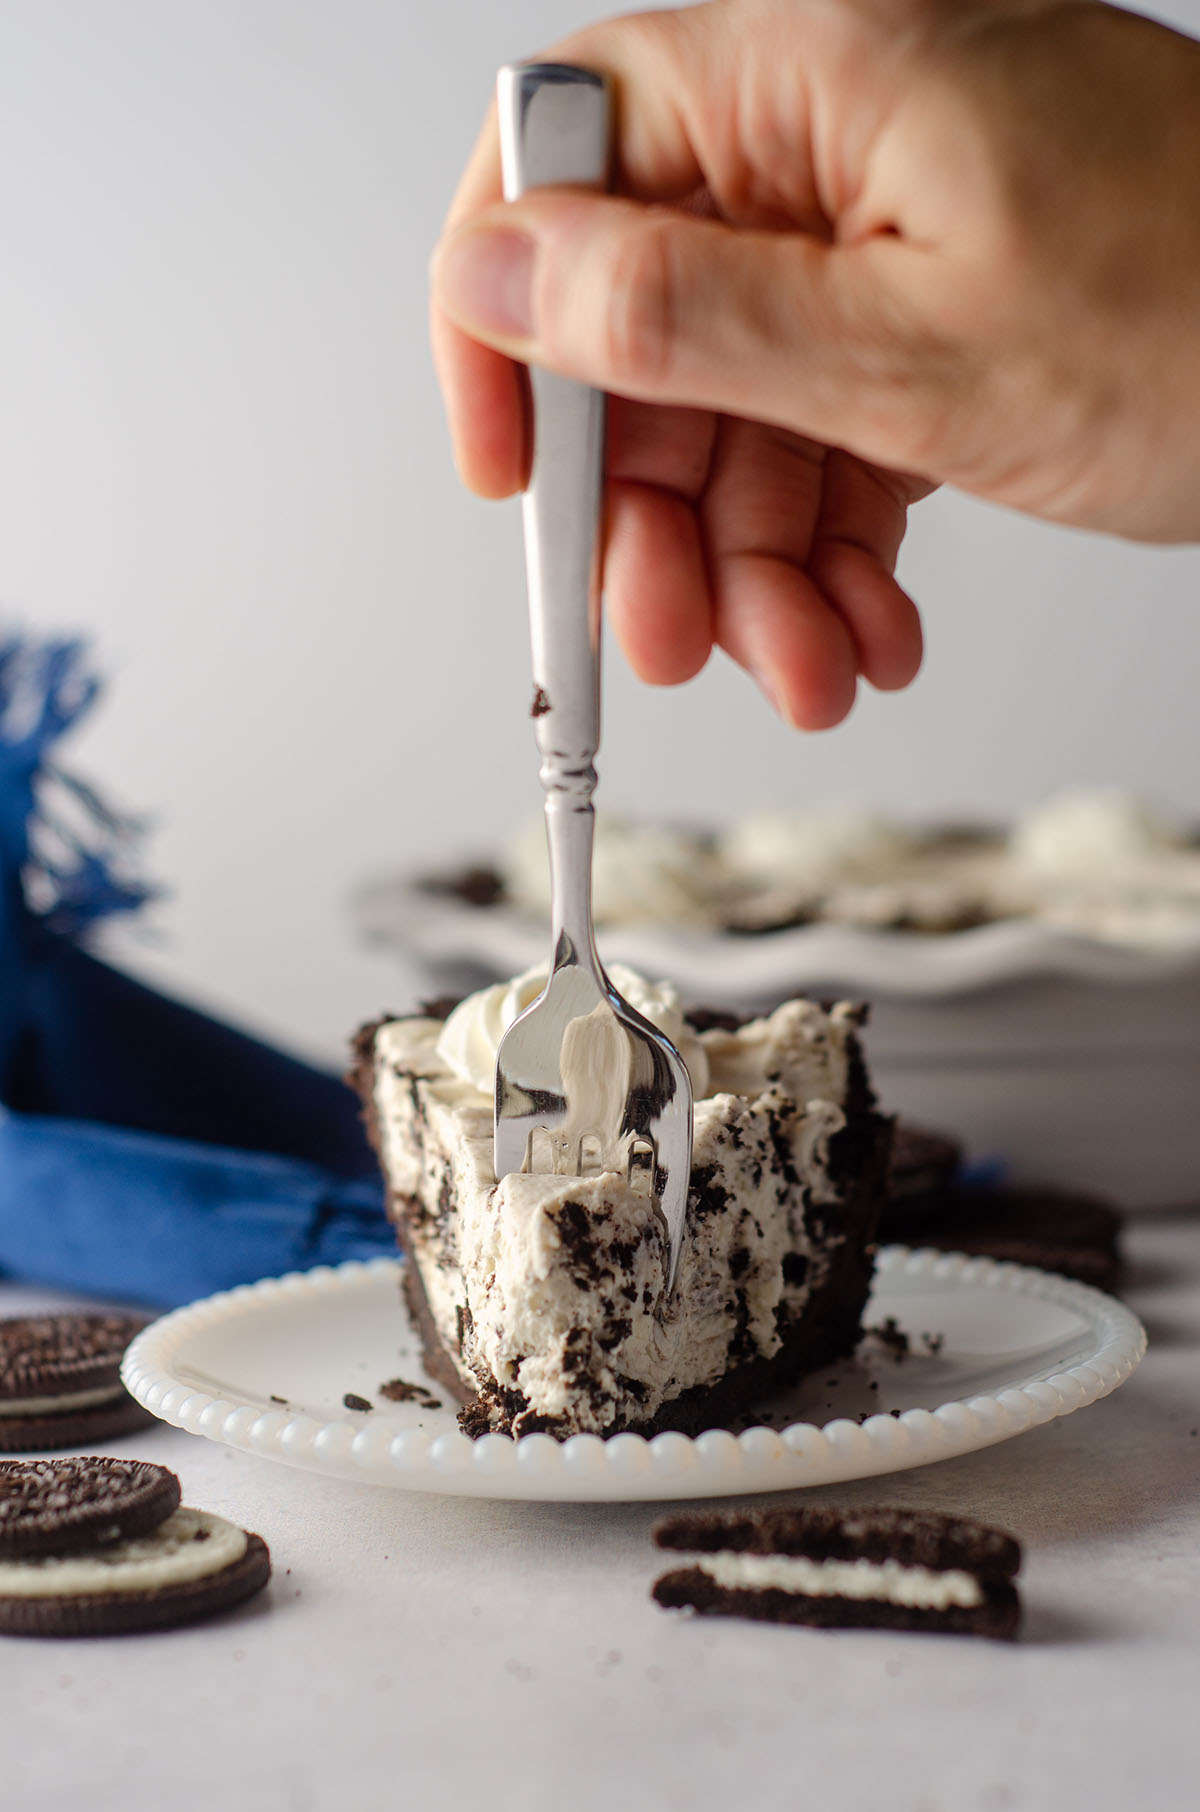 hand using a fork to dig into a slice of no bake oreo pie